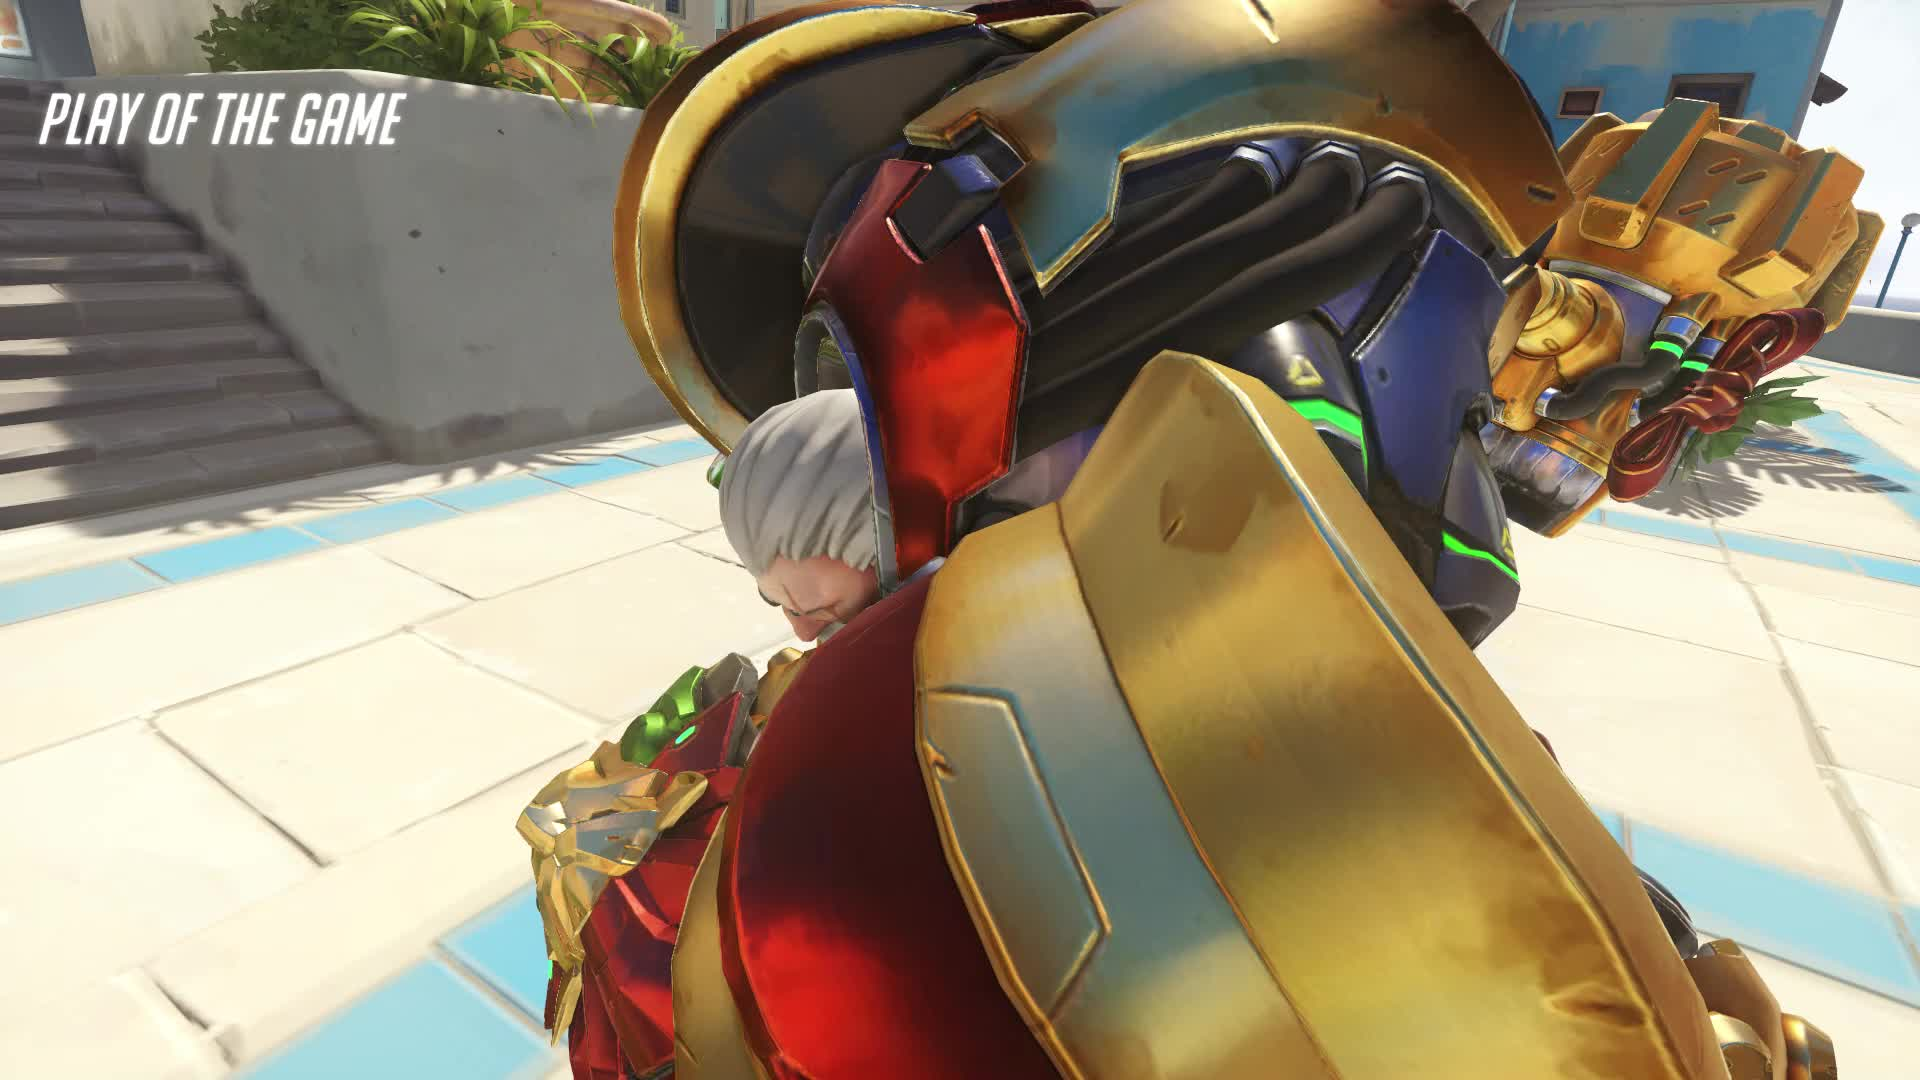 Earthshatter, Firestrike, Just hold W, Nosleep, Overwatch, POTG, Play of the Game, Rein, Reinhardt, StarkReVera, shattered presents for everyone 18-12-28 23-06-40 GIFs